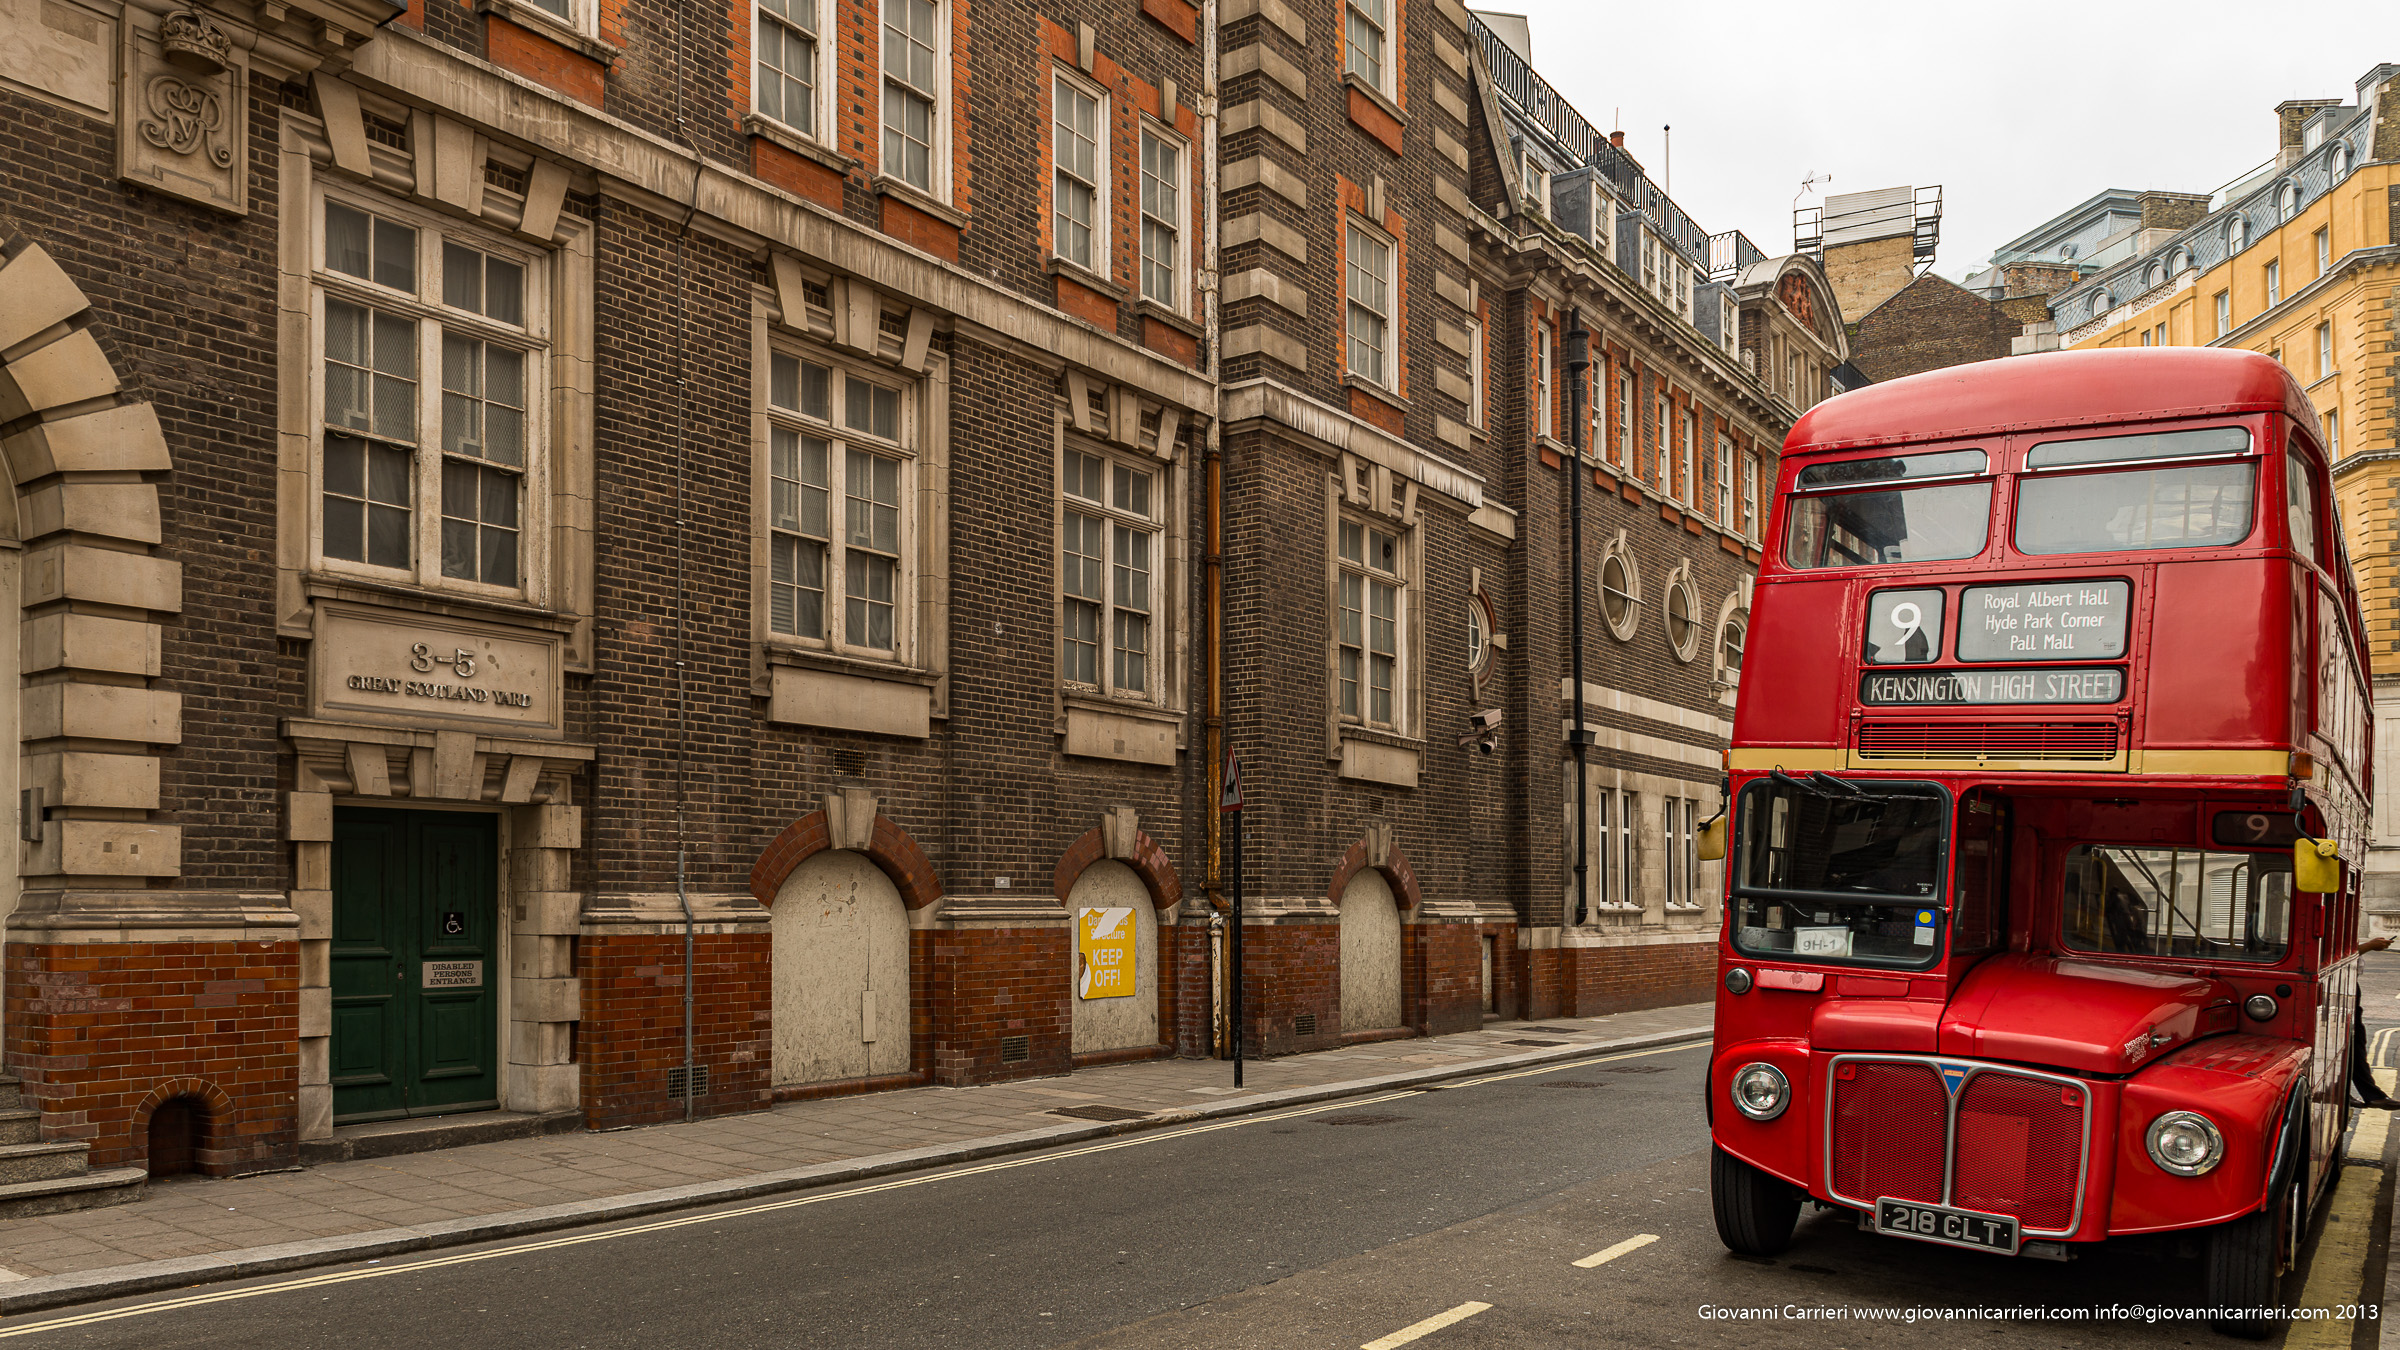 Red Bus in Scotland Yard - London